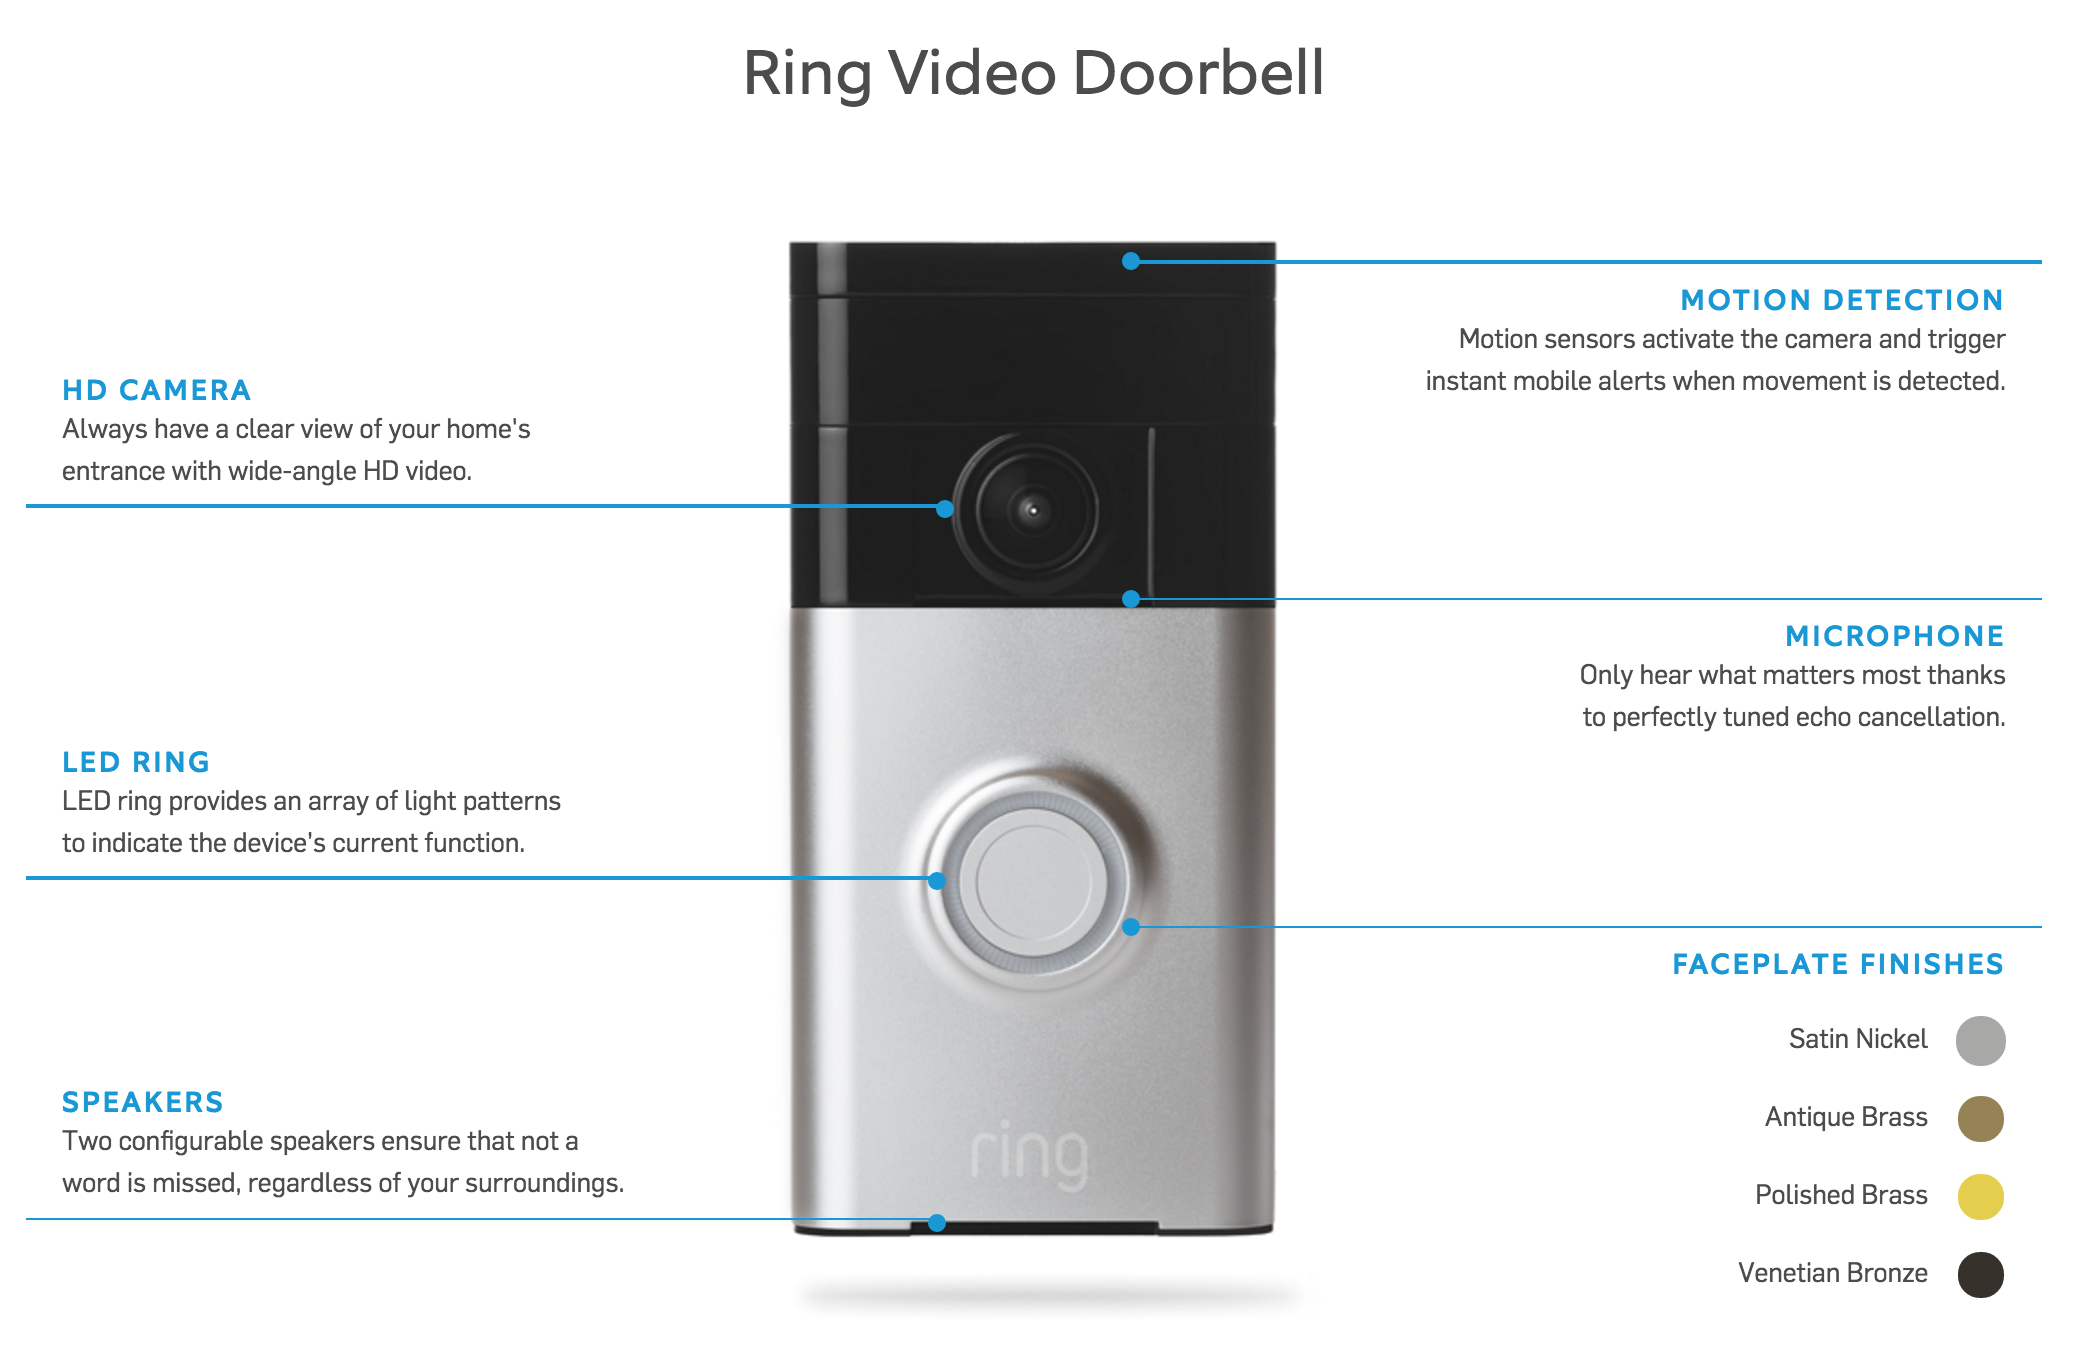 Ring Video Doorbell features